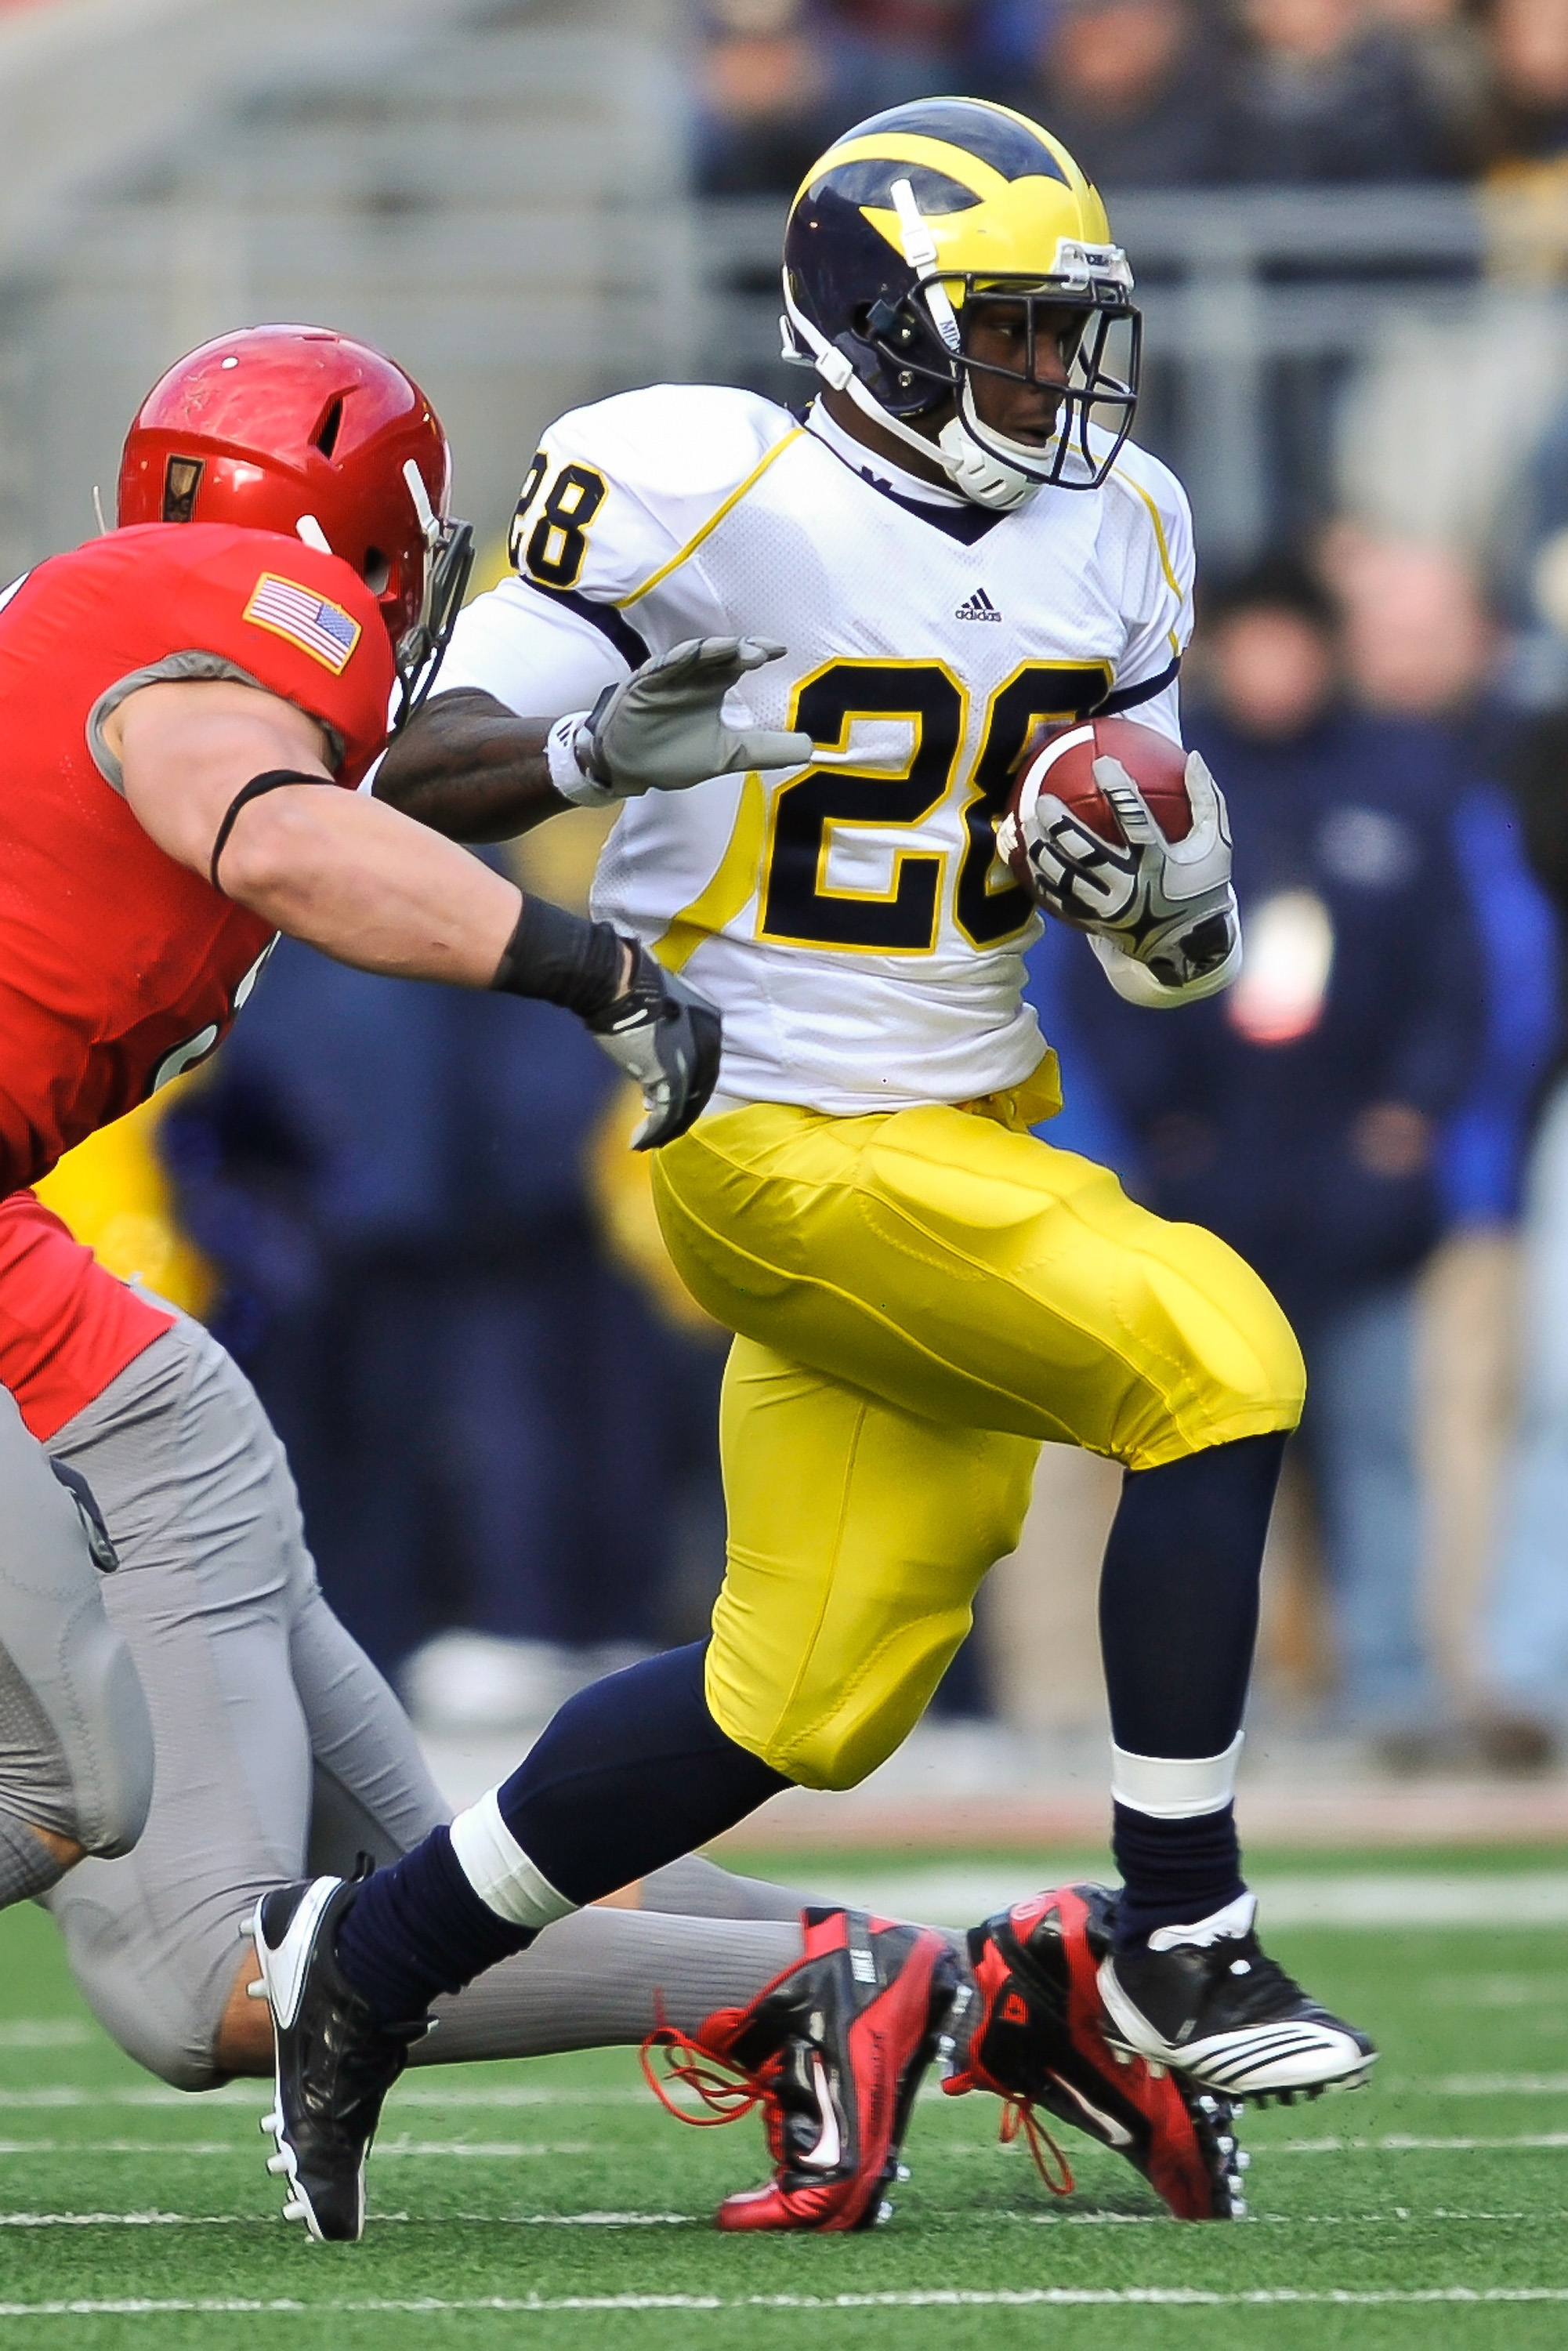 COLUMBUS, OH - NOVEMBER 27:  Fitzgerald Toussaint #28 of the Michigan Wolverines runs with the ball against the Ohio State Buckeyes at Ohio Stadium on November 27, 2010 in Columbus, Ohio.  (Photo by Jamie Sabau/Getty Images)